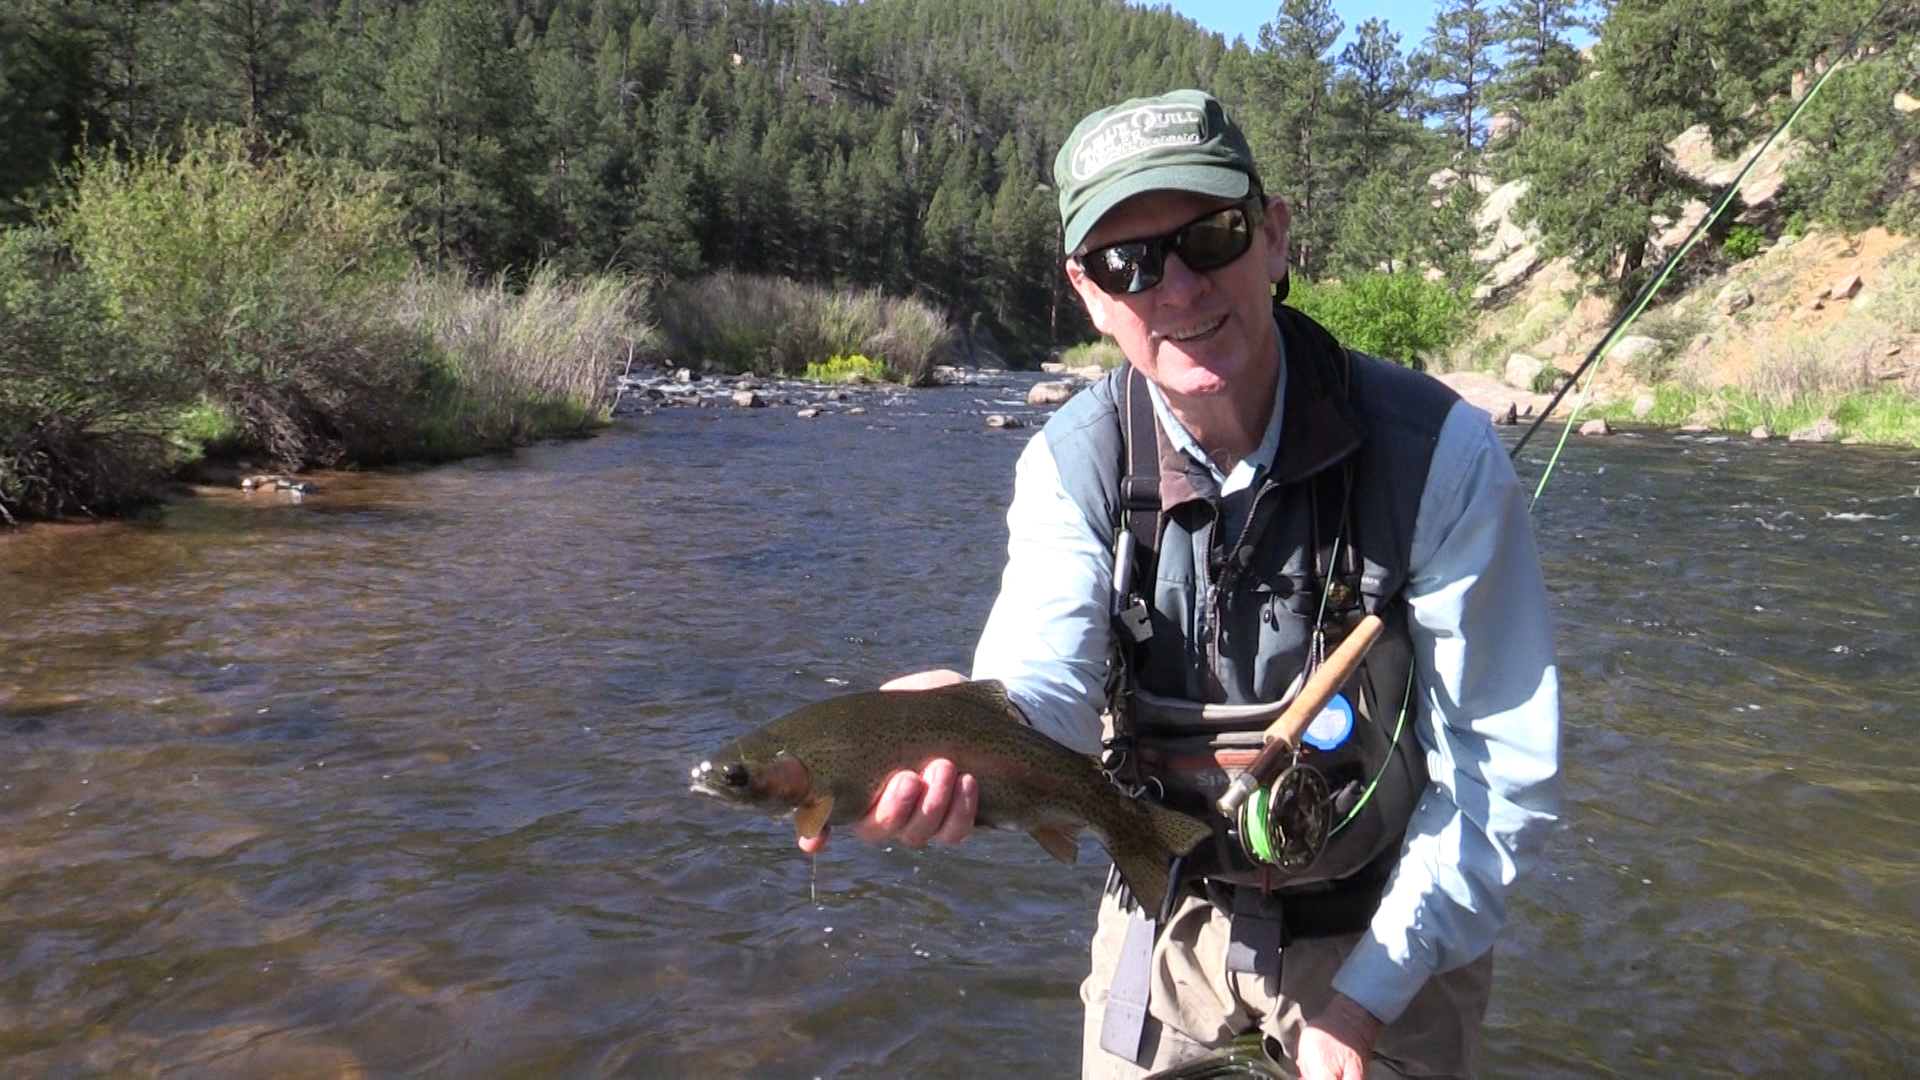 South platte river mile high water talk for Denver fly fishing guides